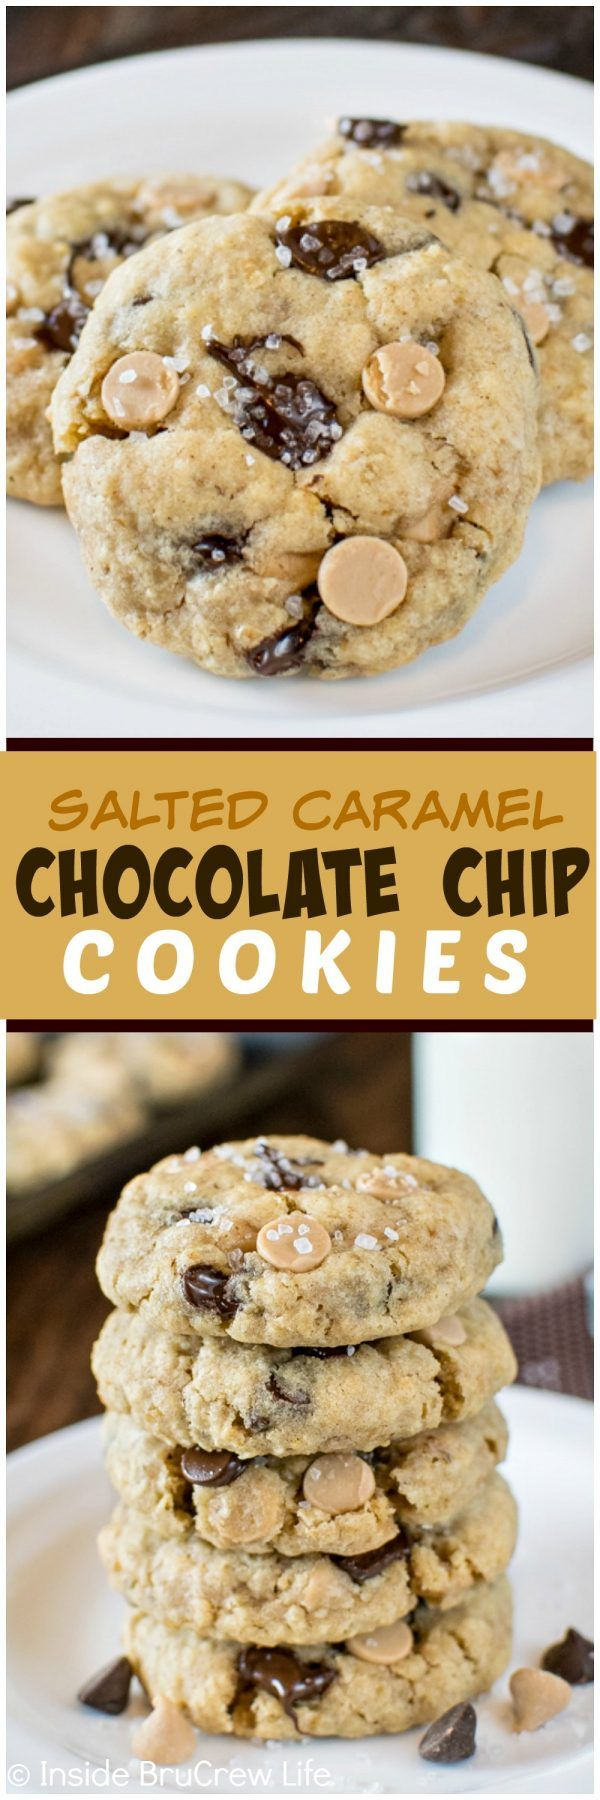 Salted Caramel Chocolate Chip Cookies - coarse sea salt & chocolate adds a sweet & salty flavor to these easy cookies. This recipe is a must make for your cookie jar!